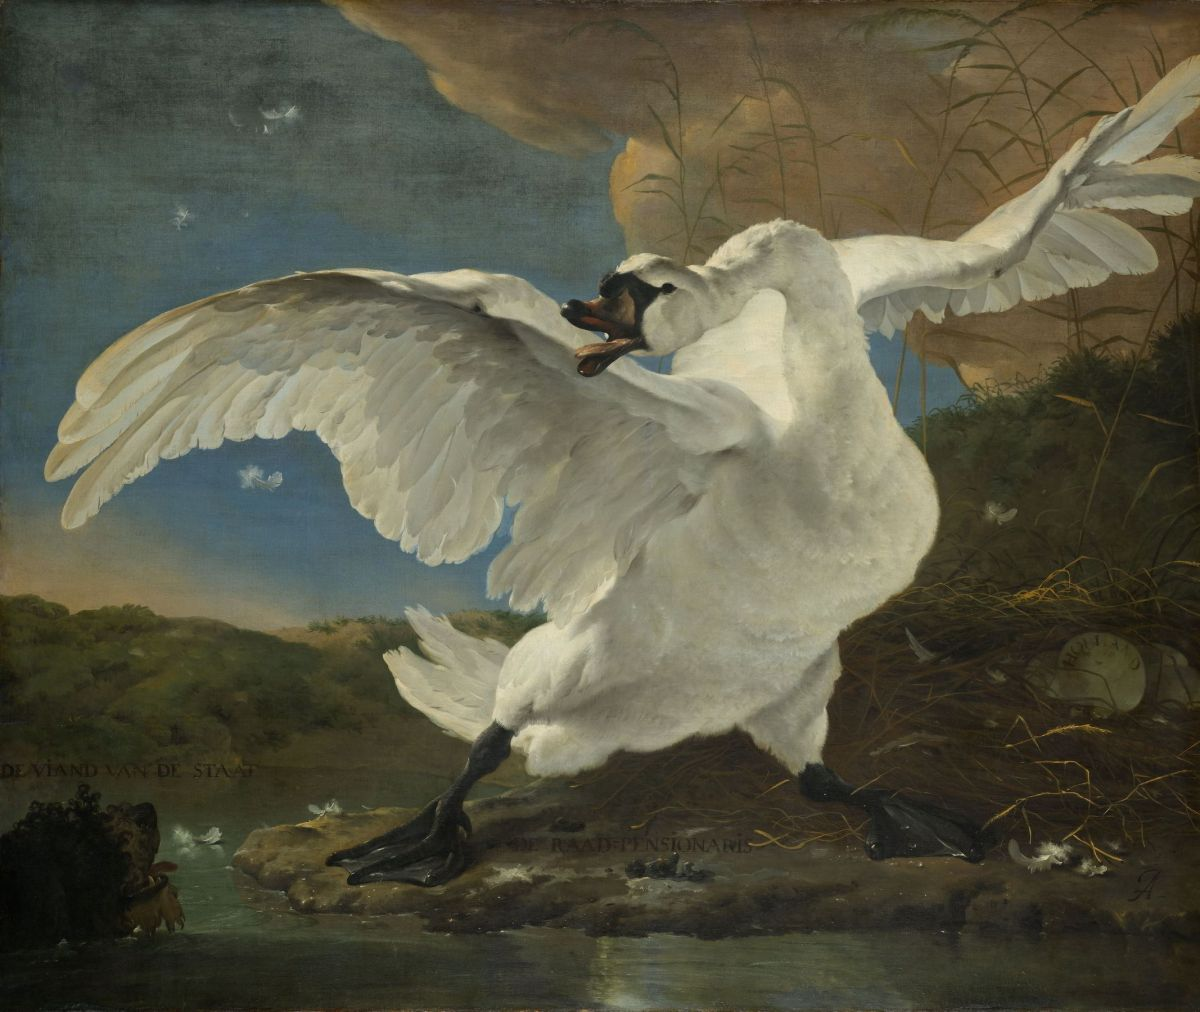 The Threatened Swan by Jan Asselyn